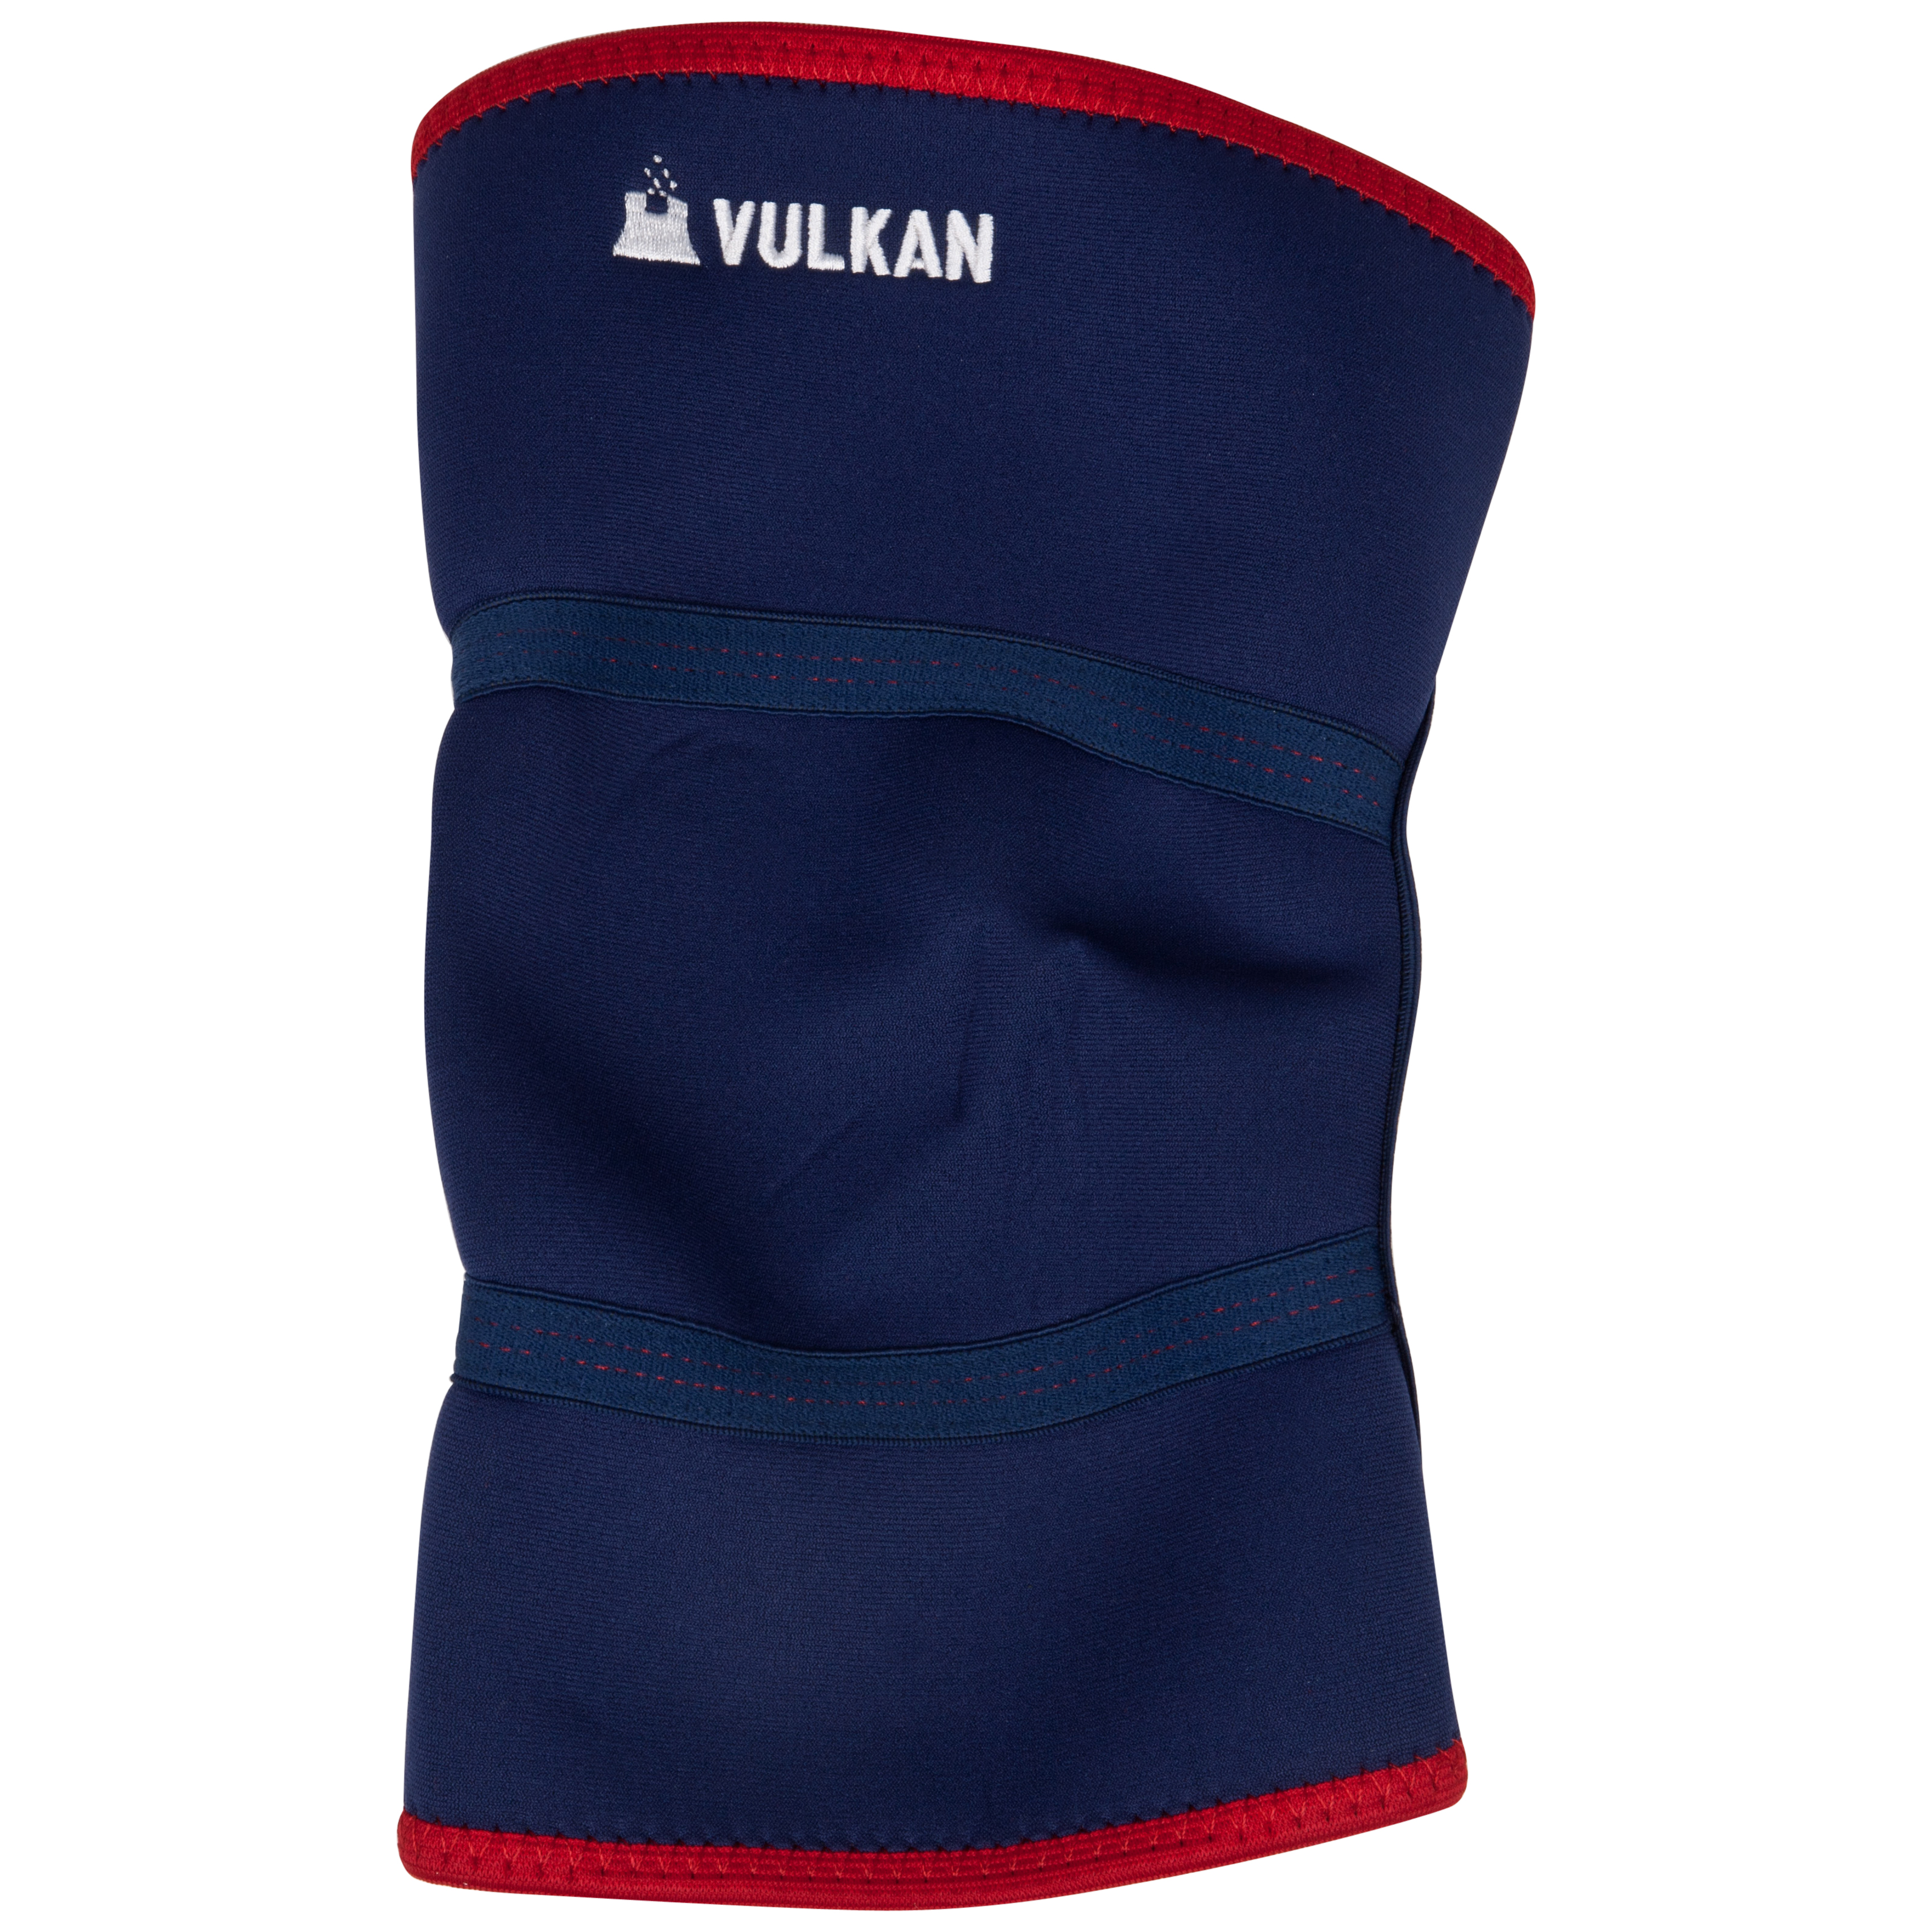 Vulkan 3mm Knee Support - Blue/Red